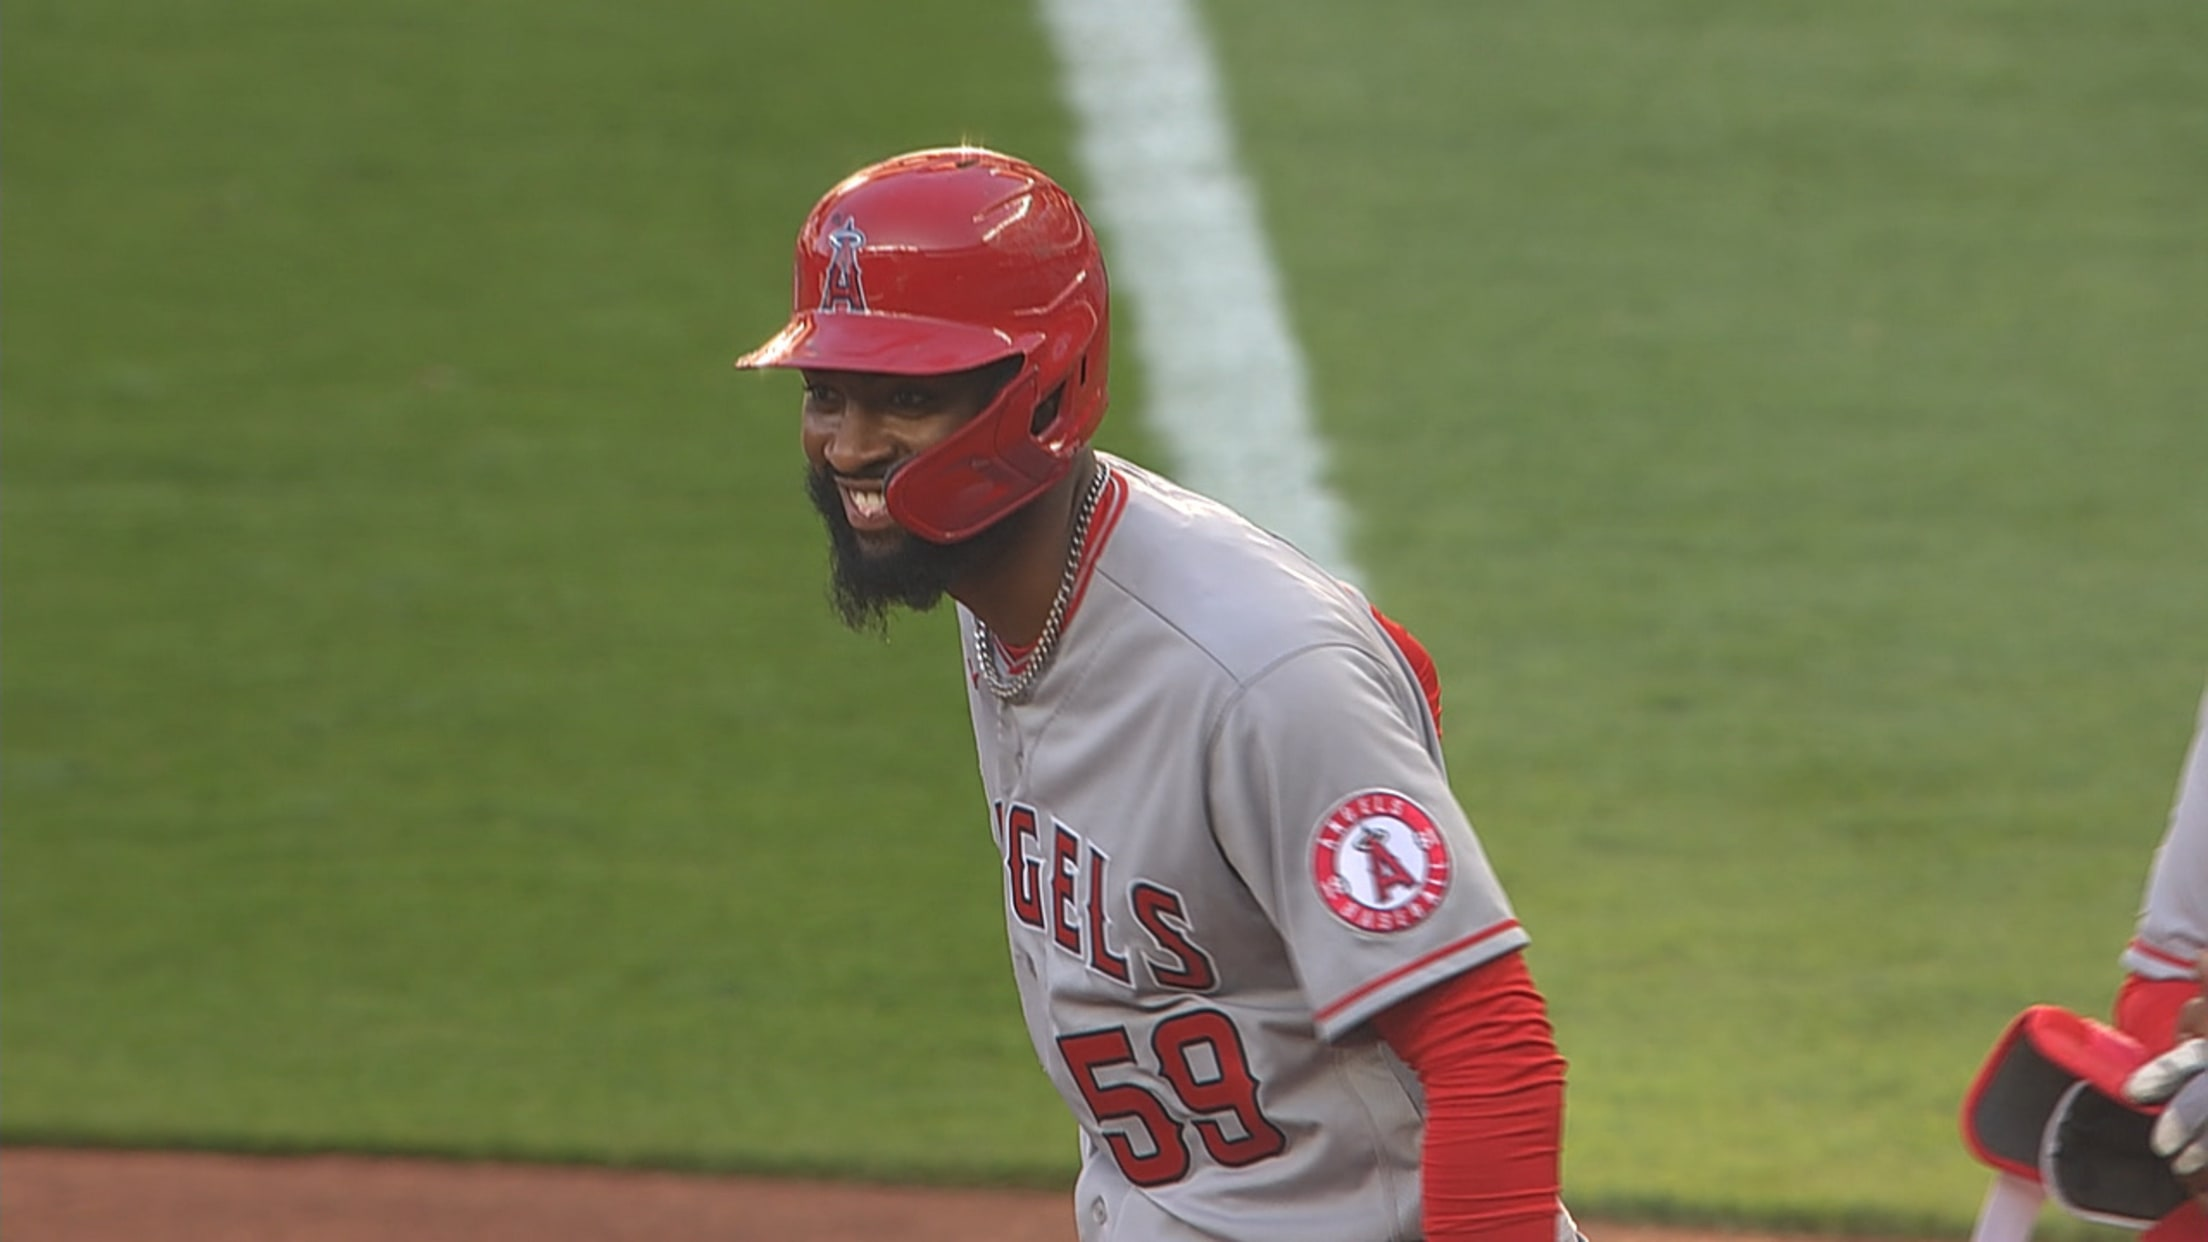 Expectations high for Jo Adell